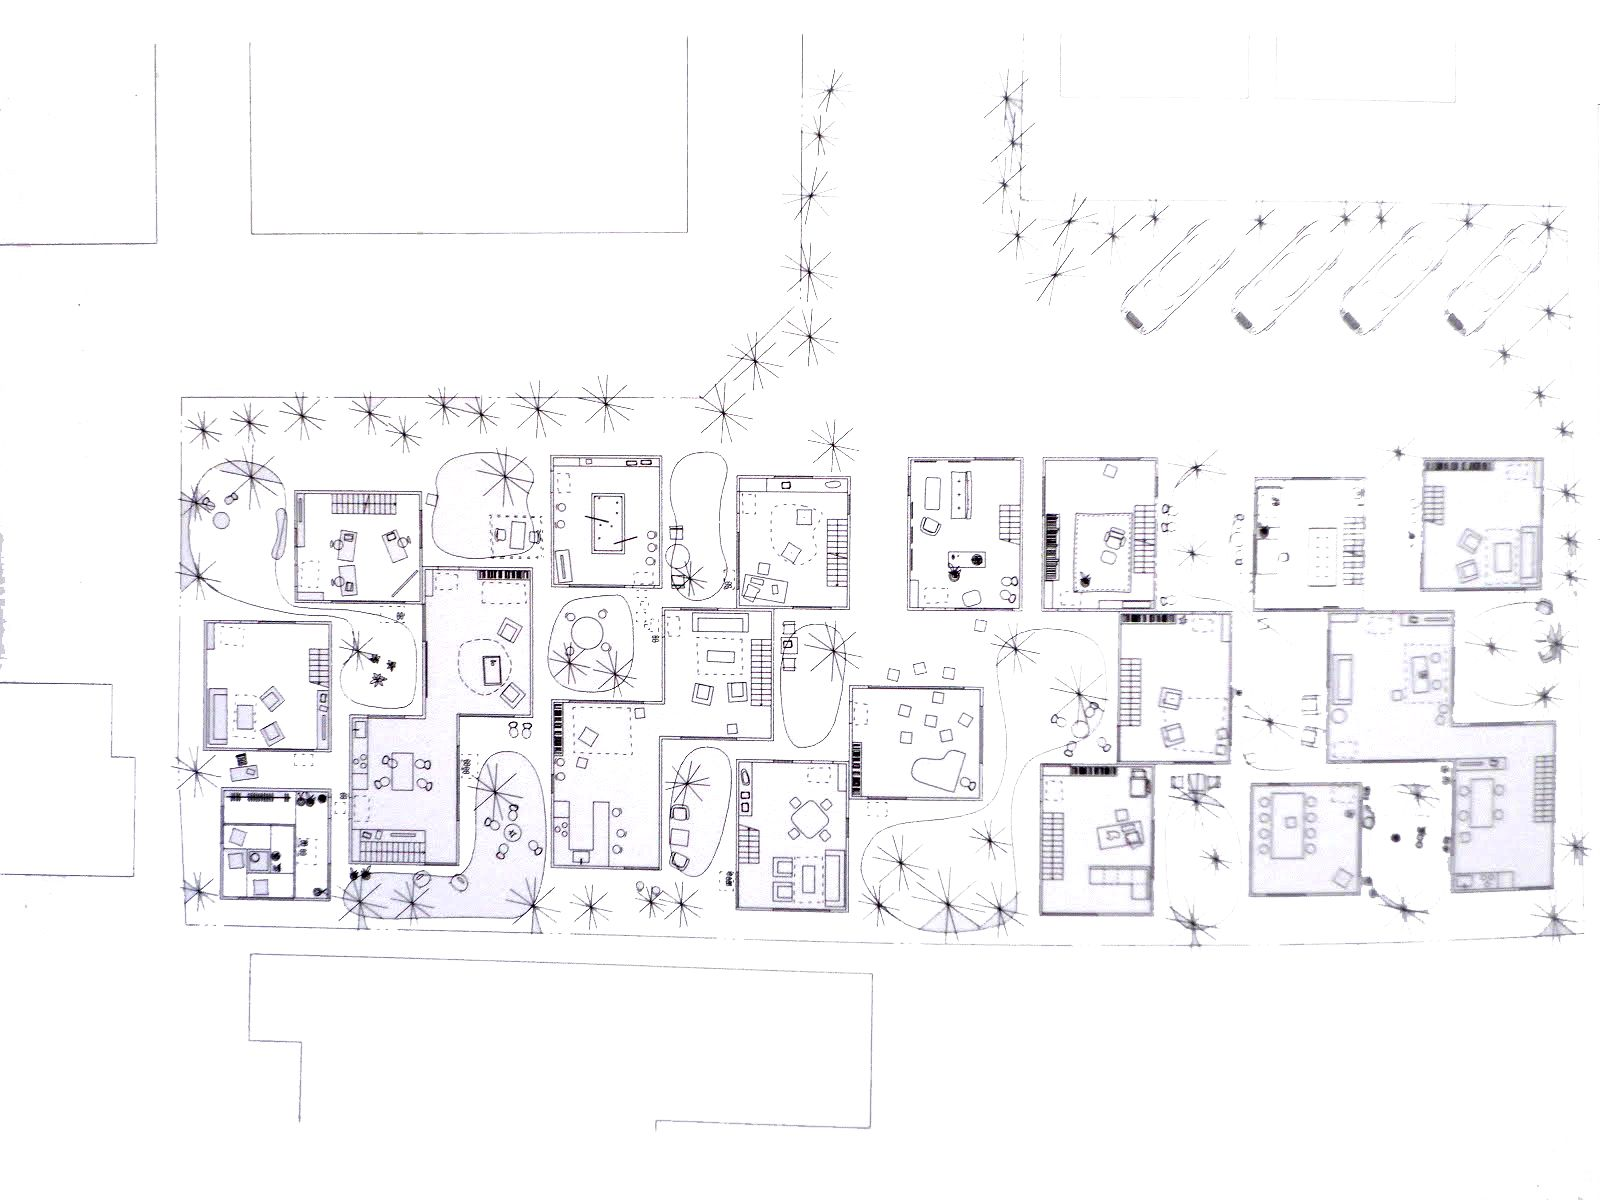 townhouse home plans with basement, townhouse plans for narrow lots, townhouse rentals, townhouse renderings, townhouse construction, townhouse community, townhouse layout, townhouse design, garage apartment plans, townhouse drawings, townhouse elevations, 2 car garage duplex plans, townhouse master plan, townhouse blueprints, townhouse deck plans, townhouse luxury interior, on japanese townhouse floor plans